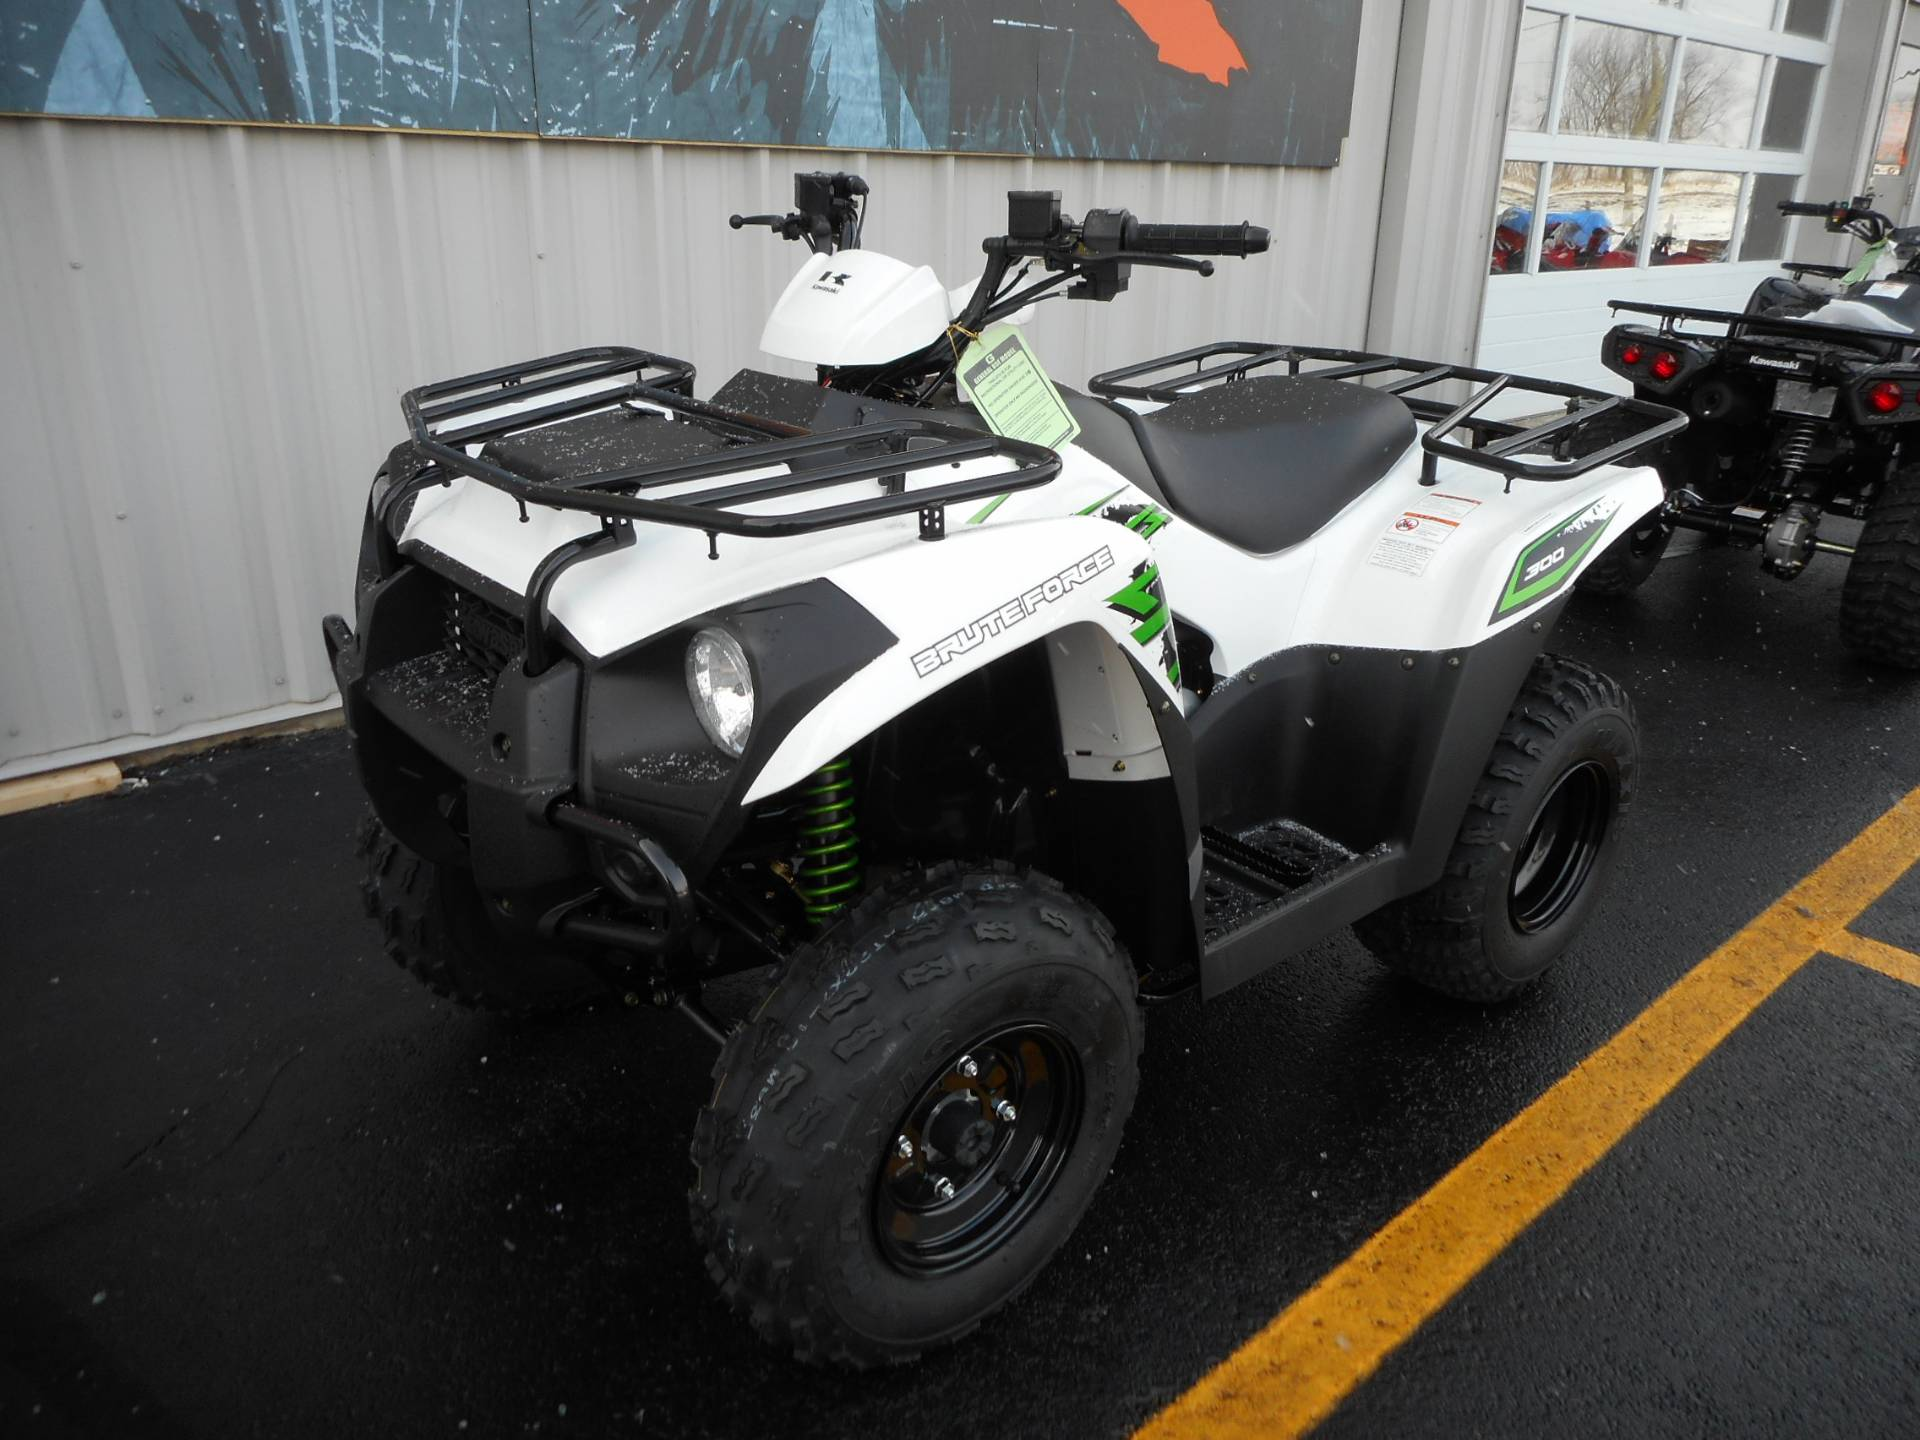 2018 Kawasaki Brute Force 300 in Belvidere, Illinois - Photo 10